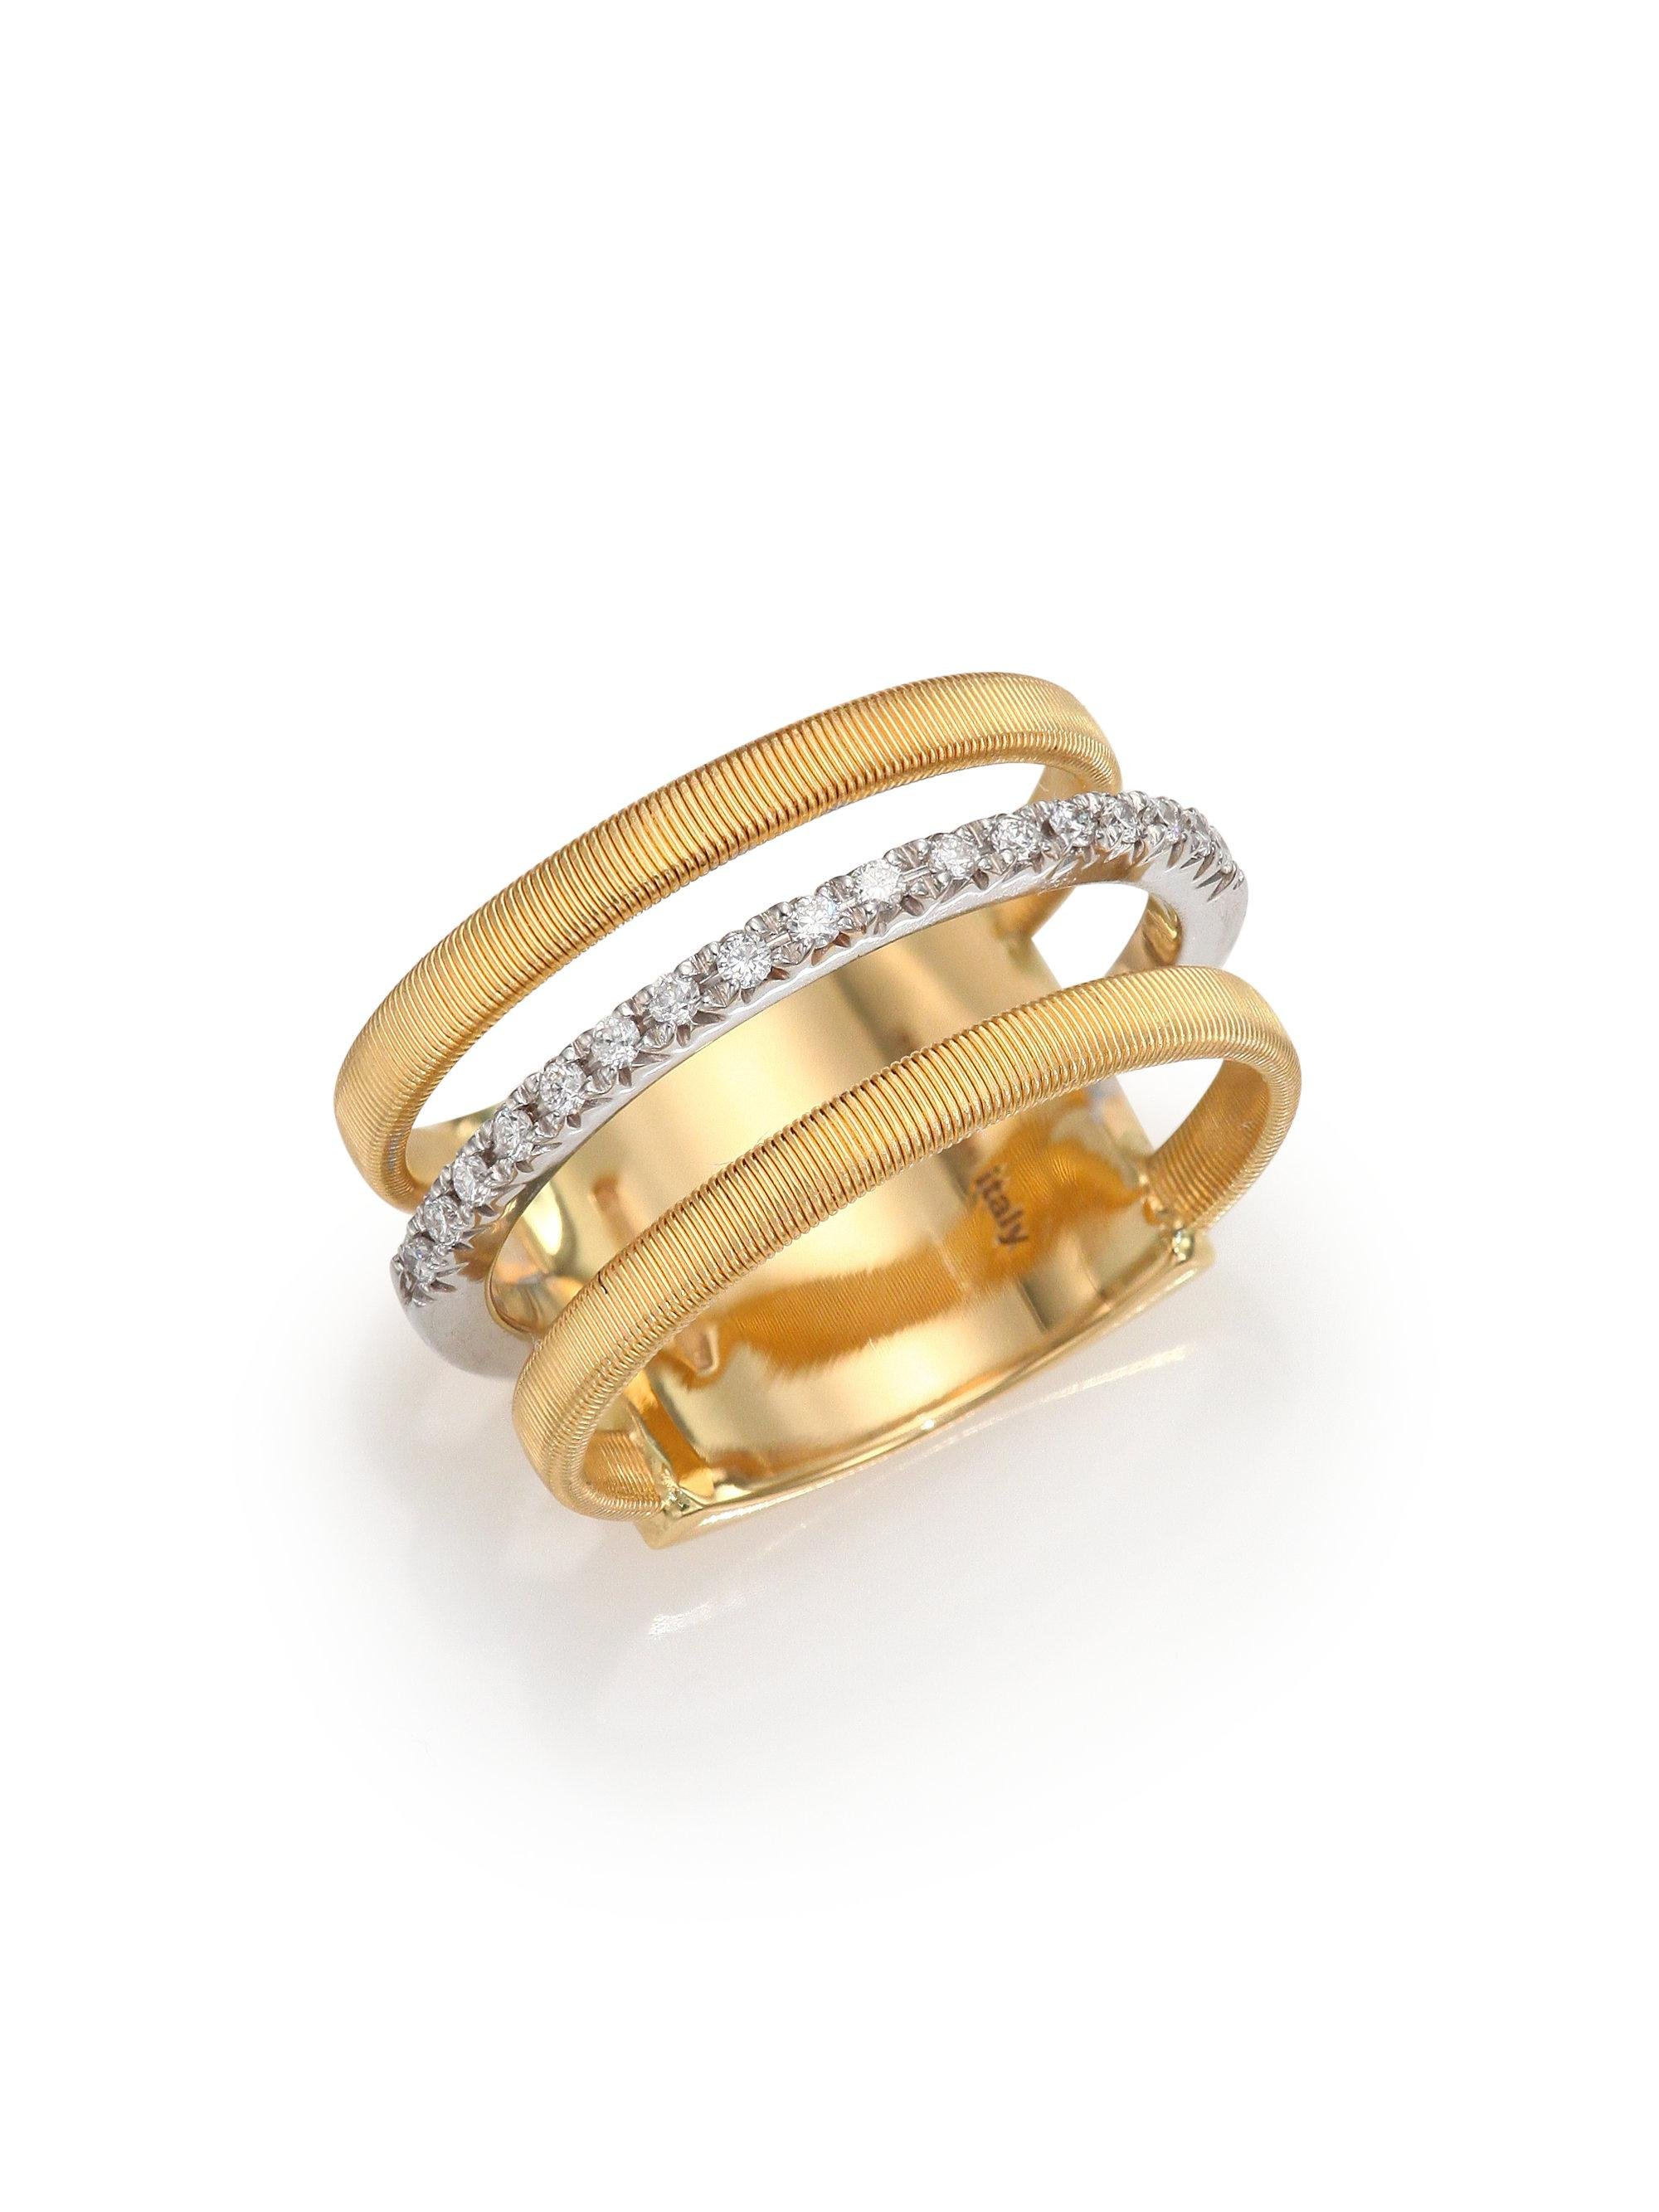 Marco Bicego Masai Ring with Diamonds in 18K Yellow Gold vk9fWy